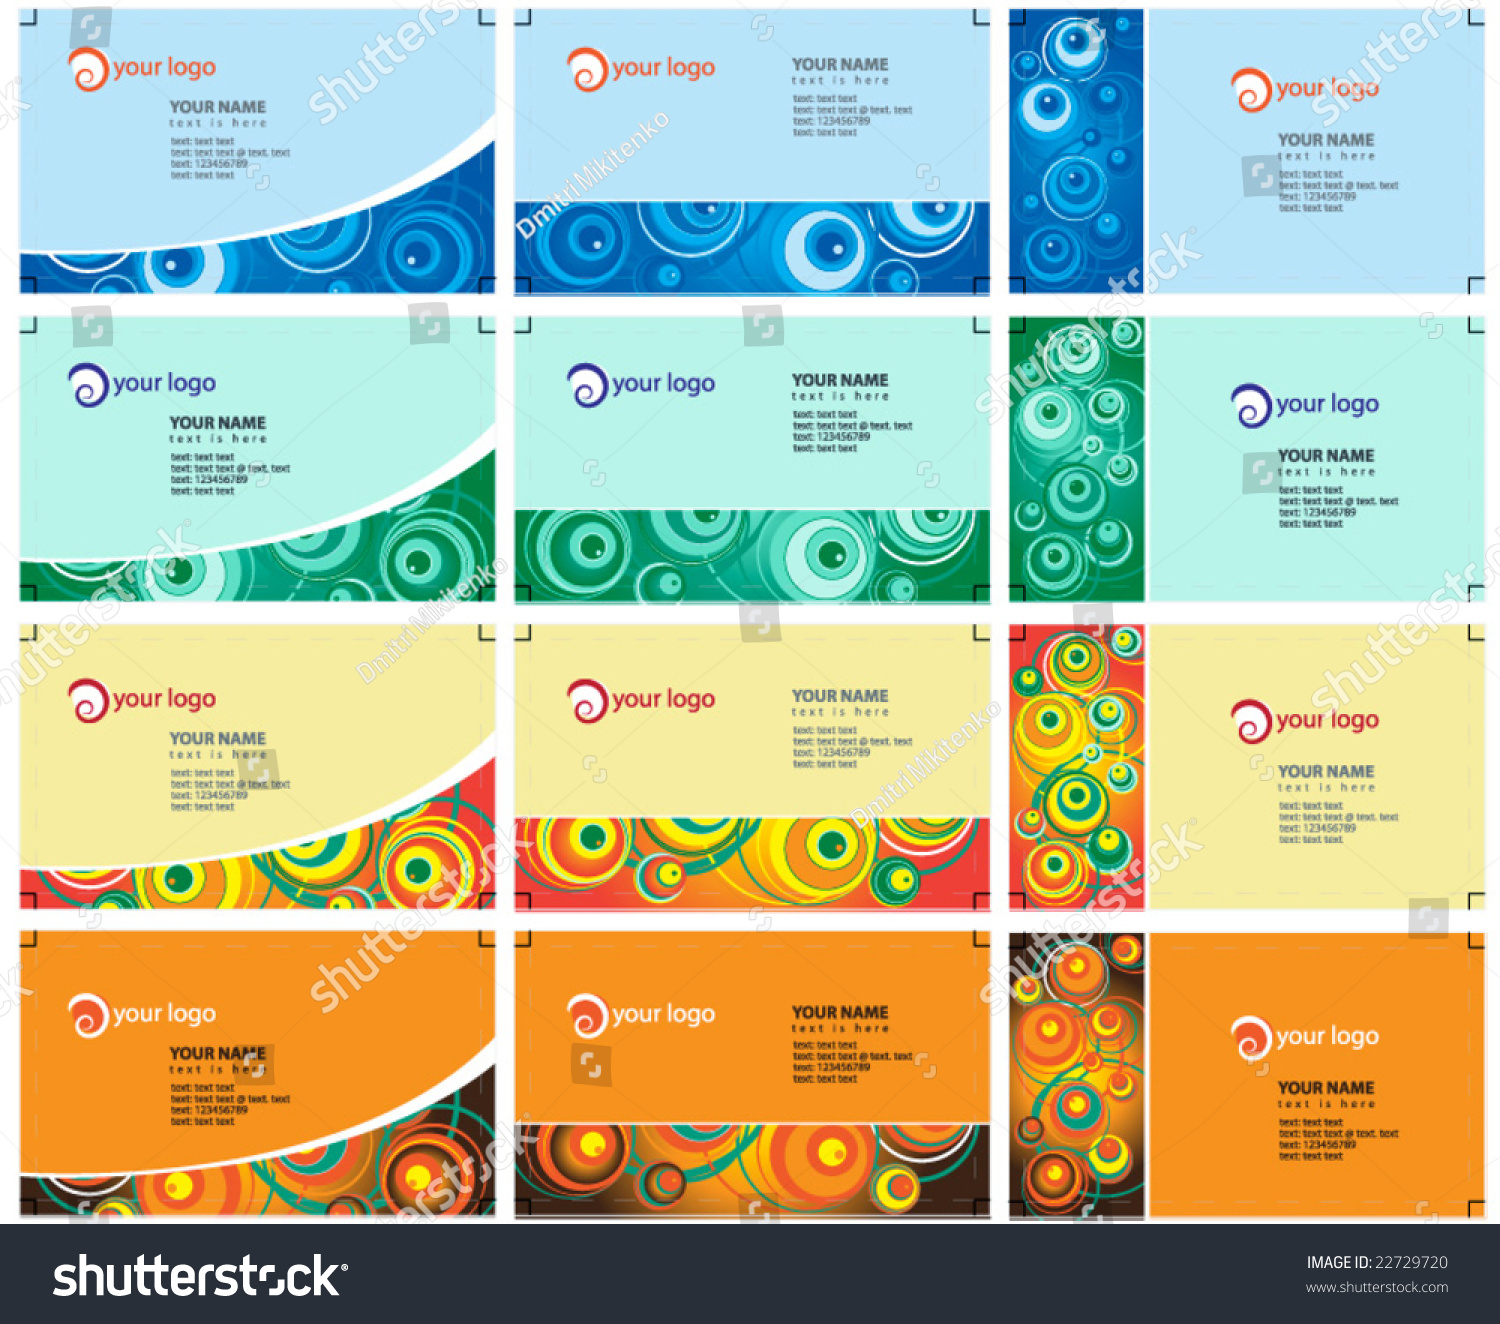 Fun business cards vector file stock vector 22729720 shutterstock fun business cards vector file reheart Image collections